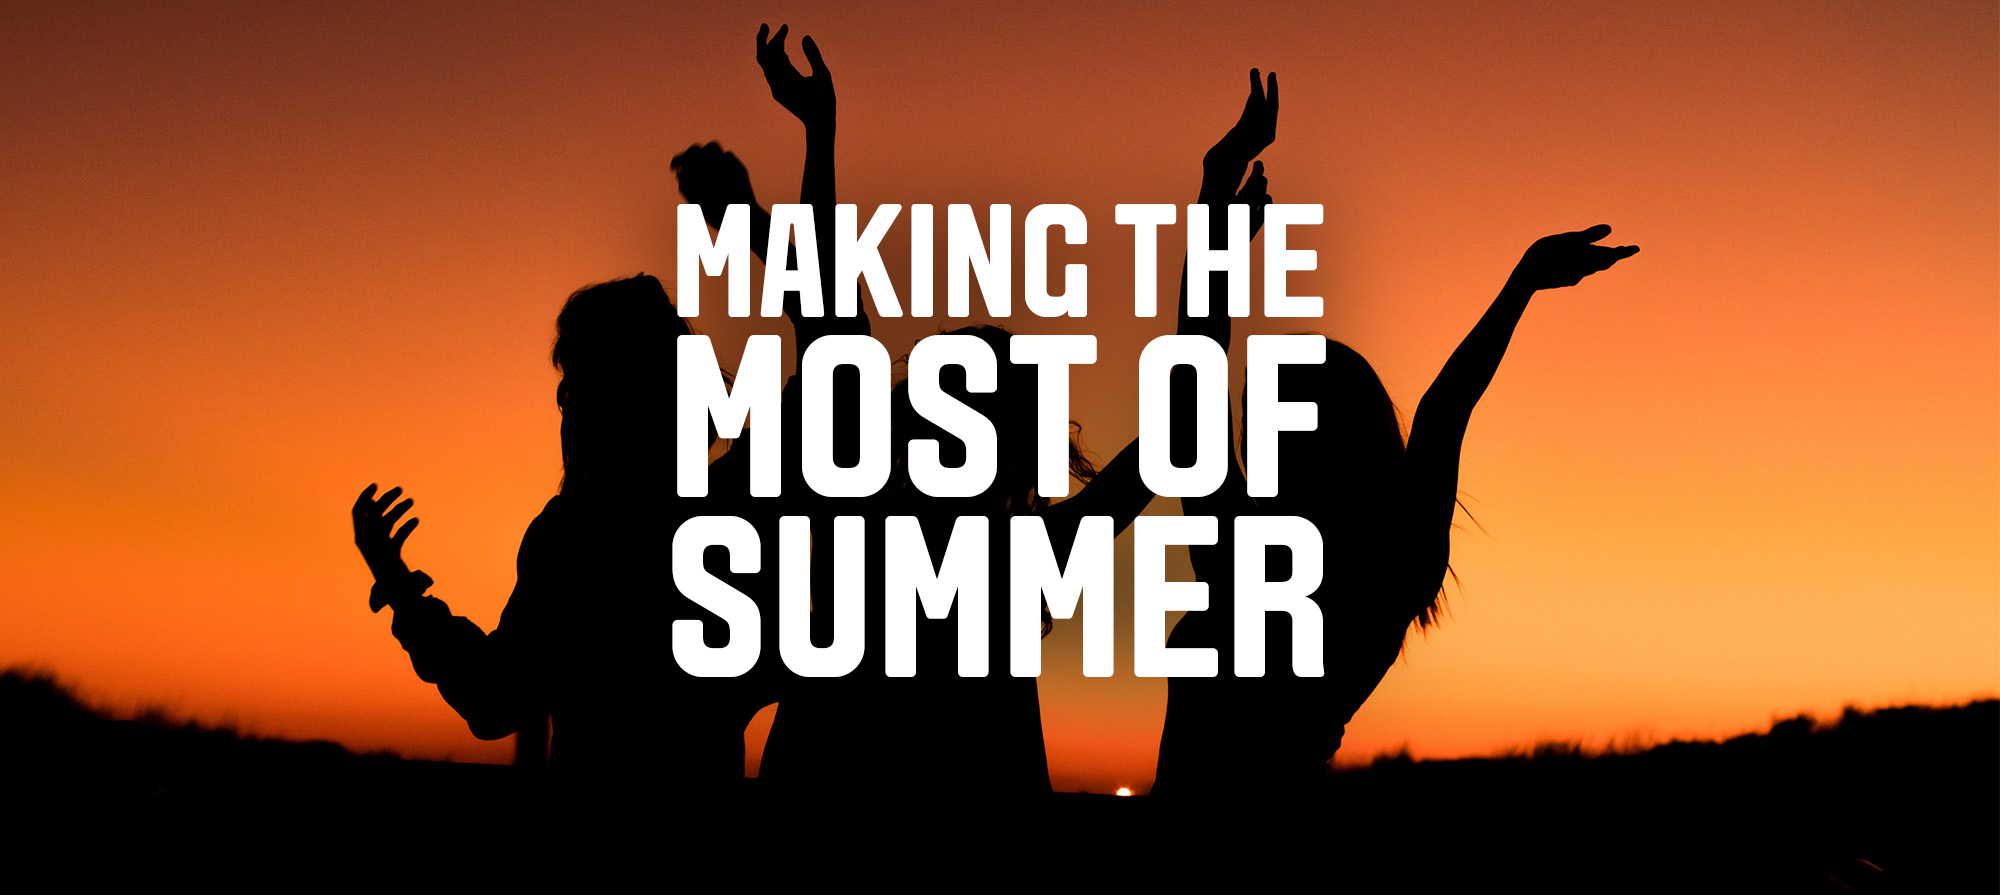 Student Life A Guide To Making The Most Of Summer